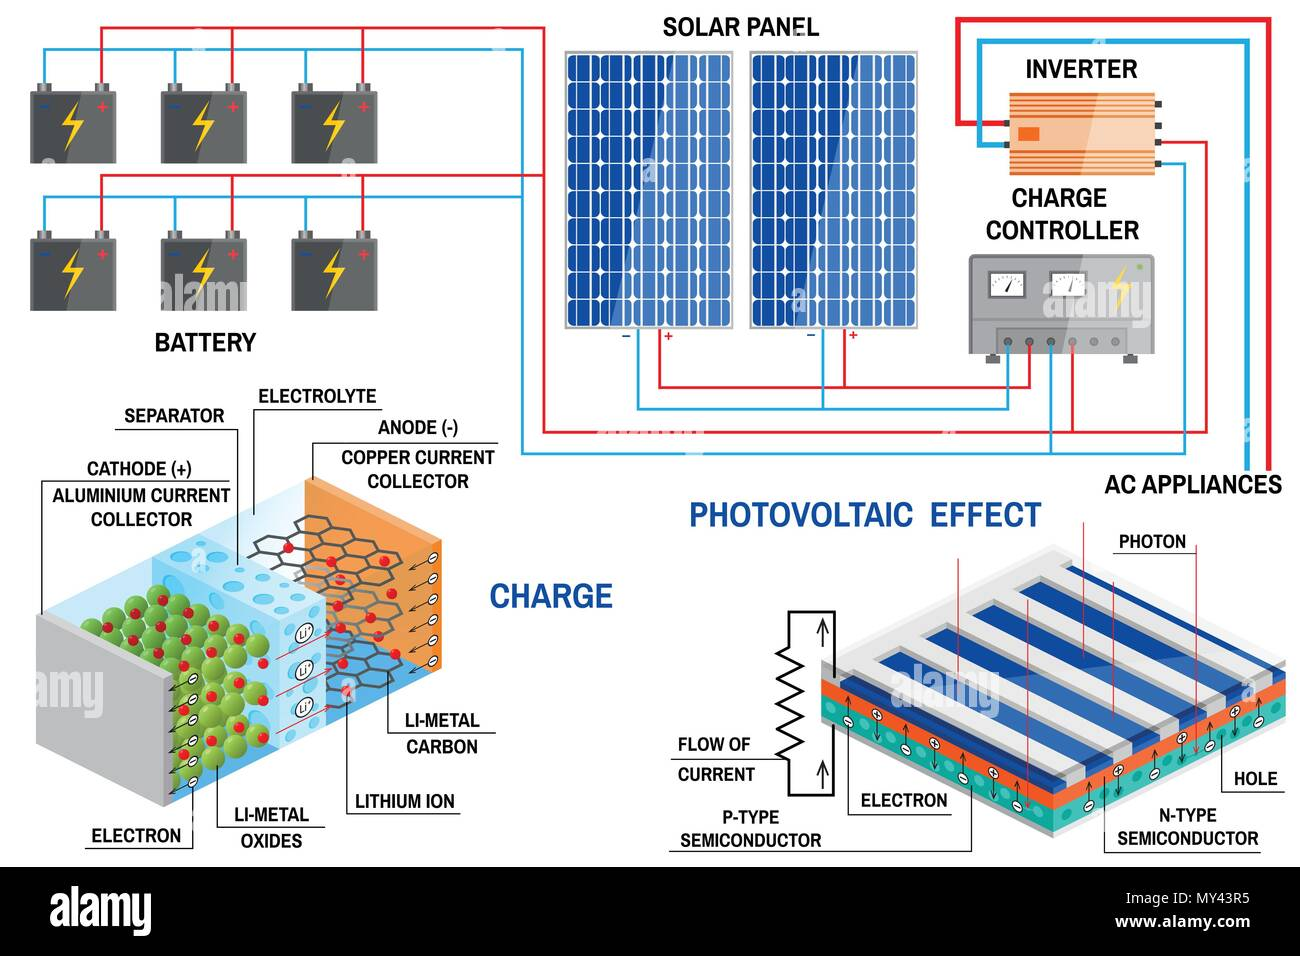 hight resolution of solar energy panels diagram solar energy diagram stock wiring solar panels diagram solar energy diagram stock